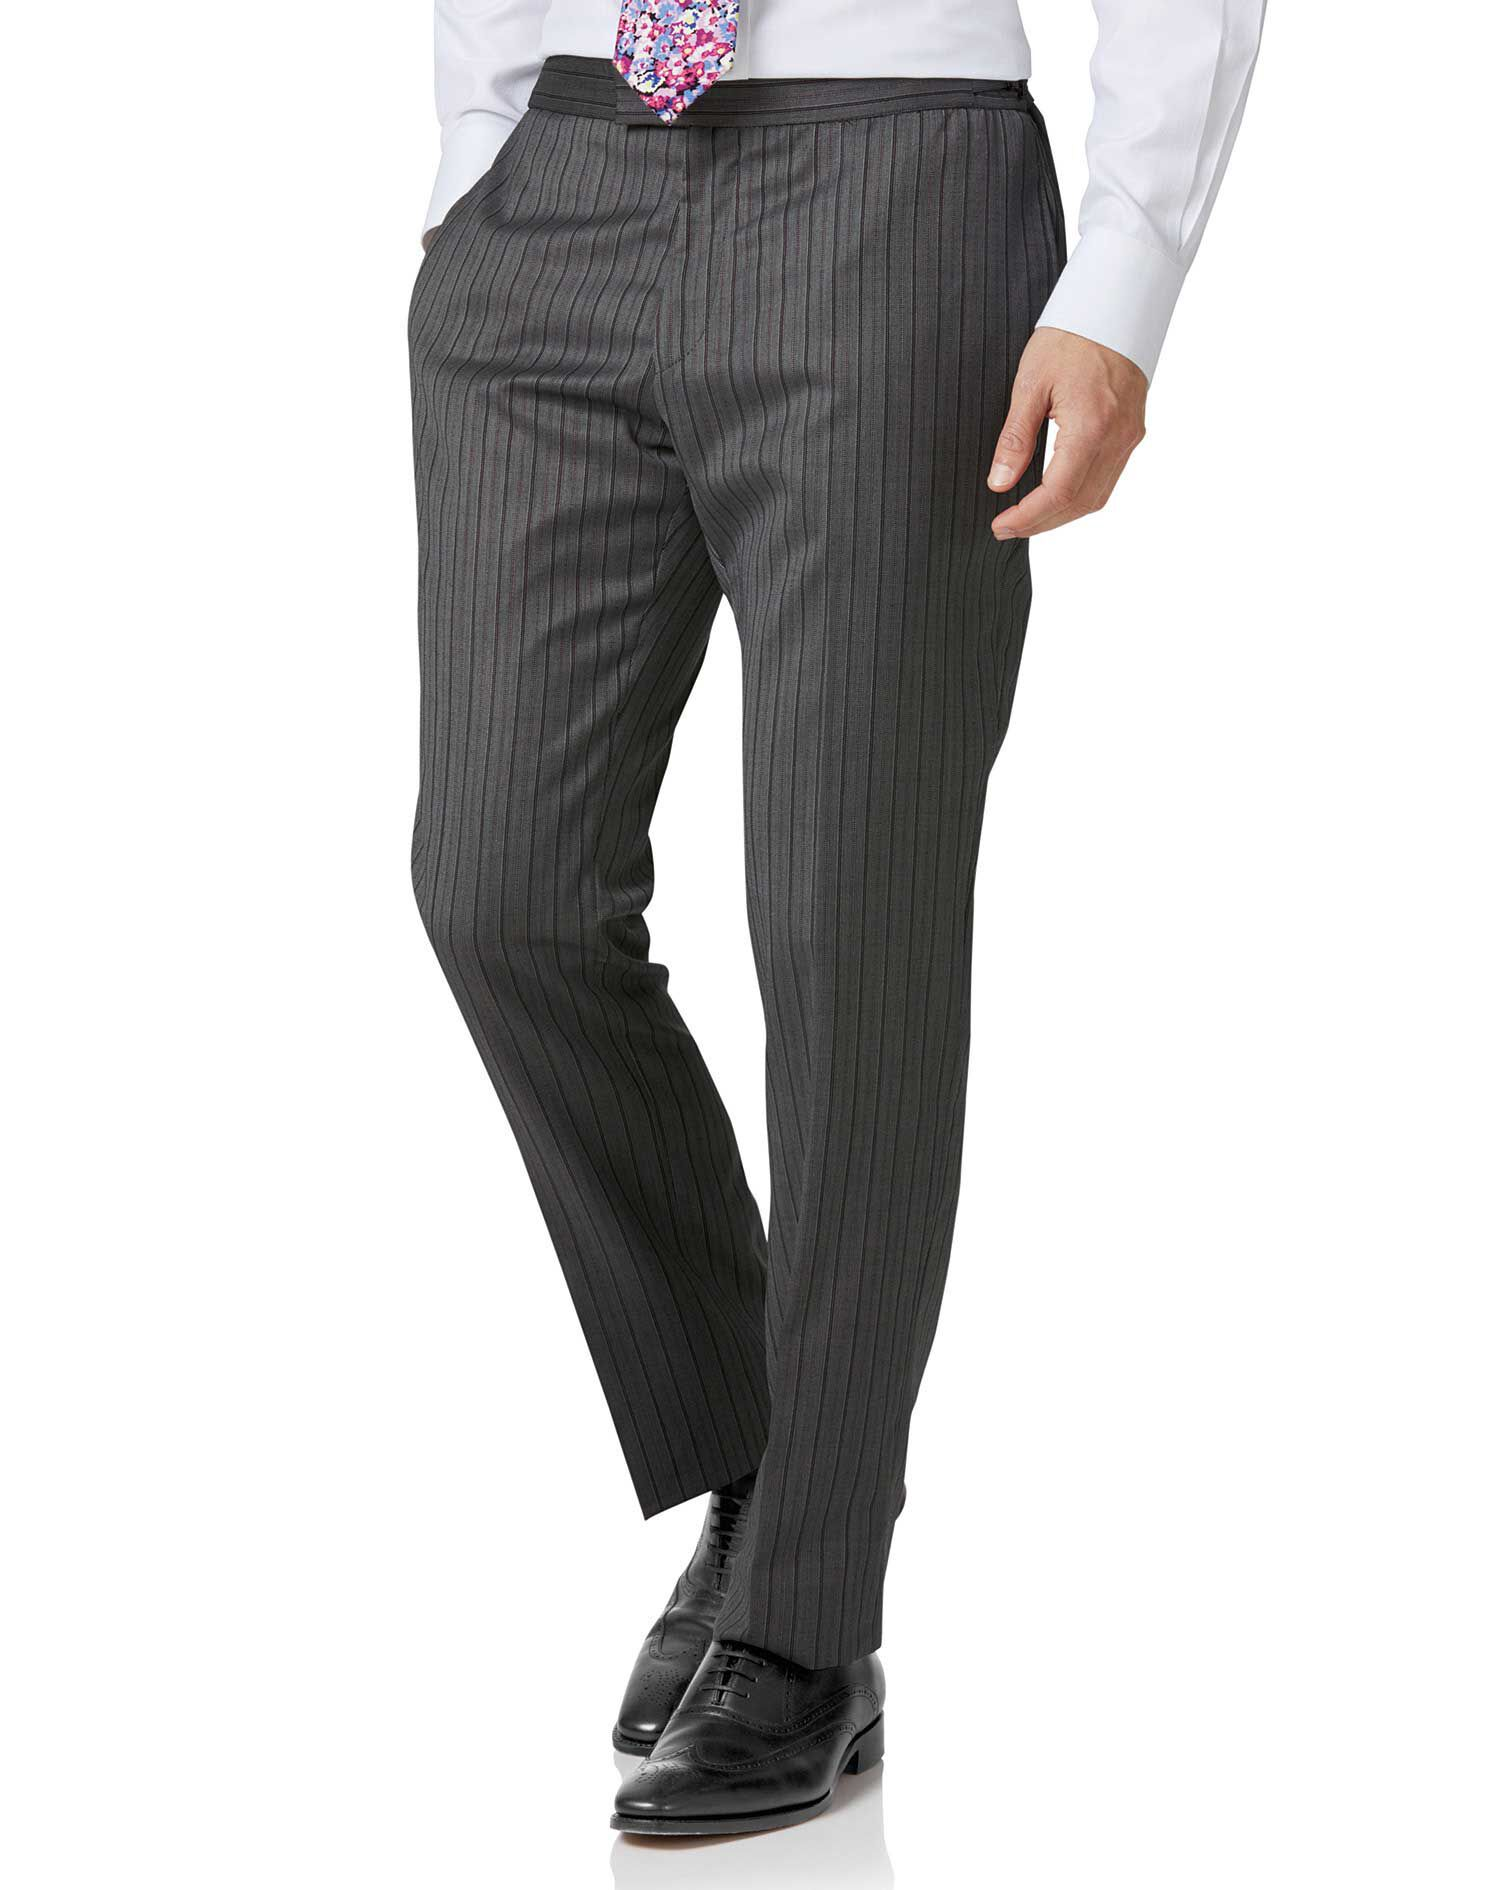 1920s Men's Pants History: Oxford Bags, Plus Four Knickers, Overalls Charles Tyrwhitt Charcoal slim fit morning suit trousers £120.00 AT vintagedancer.com